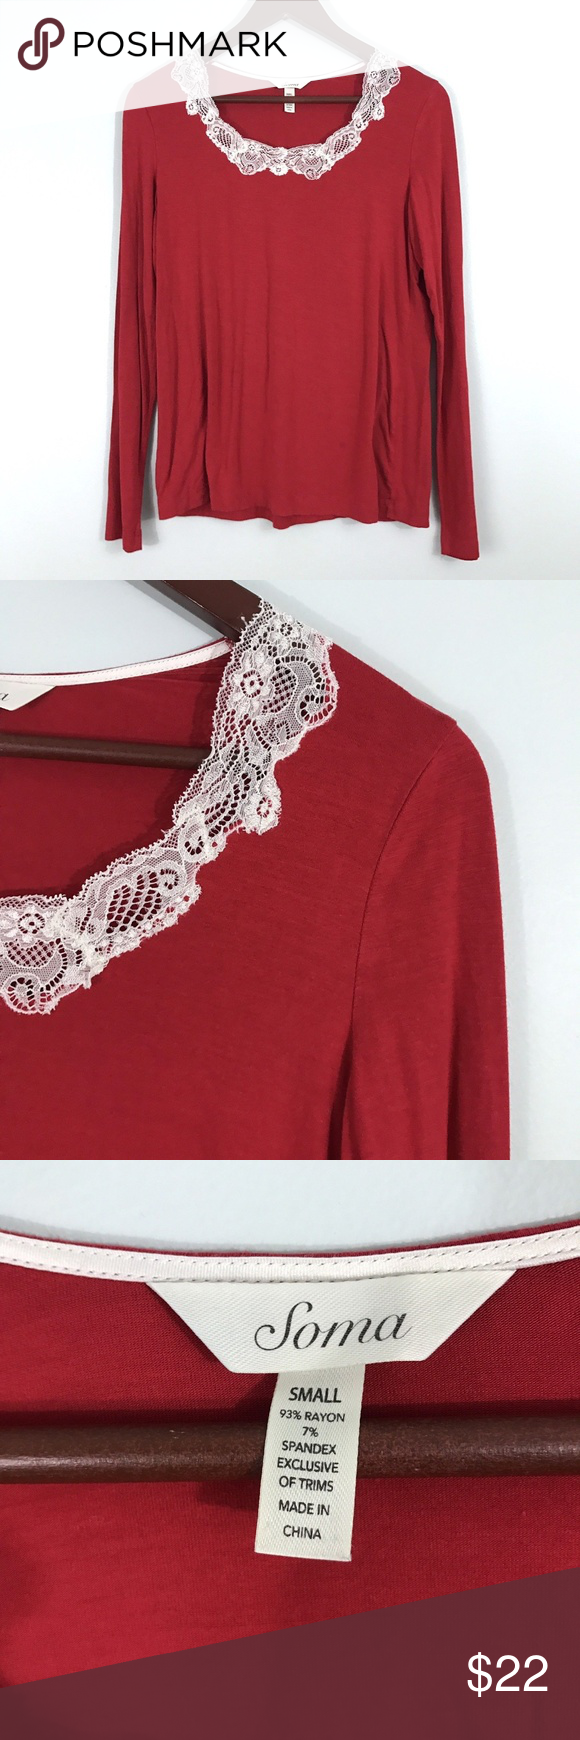 993800321c Soma Red Lace Trim Soft Slinky Knit Sleep Shirt Soma Small Womens Red Lace  Trim Soft